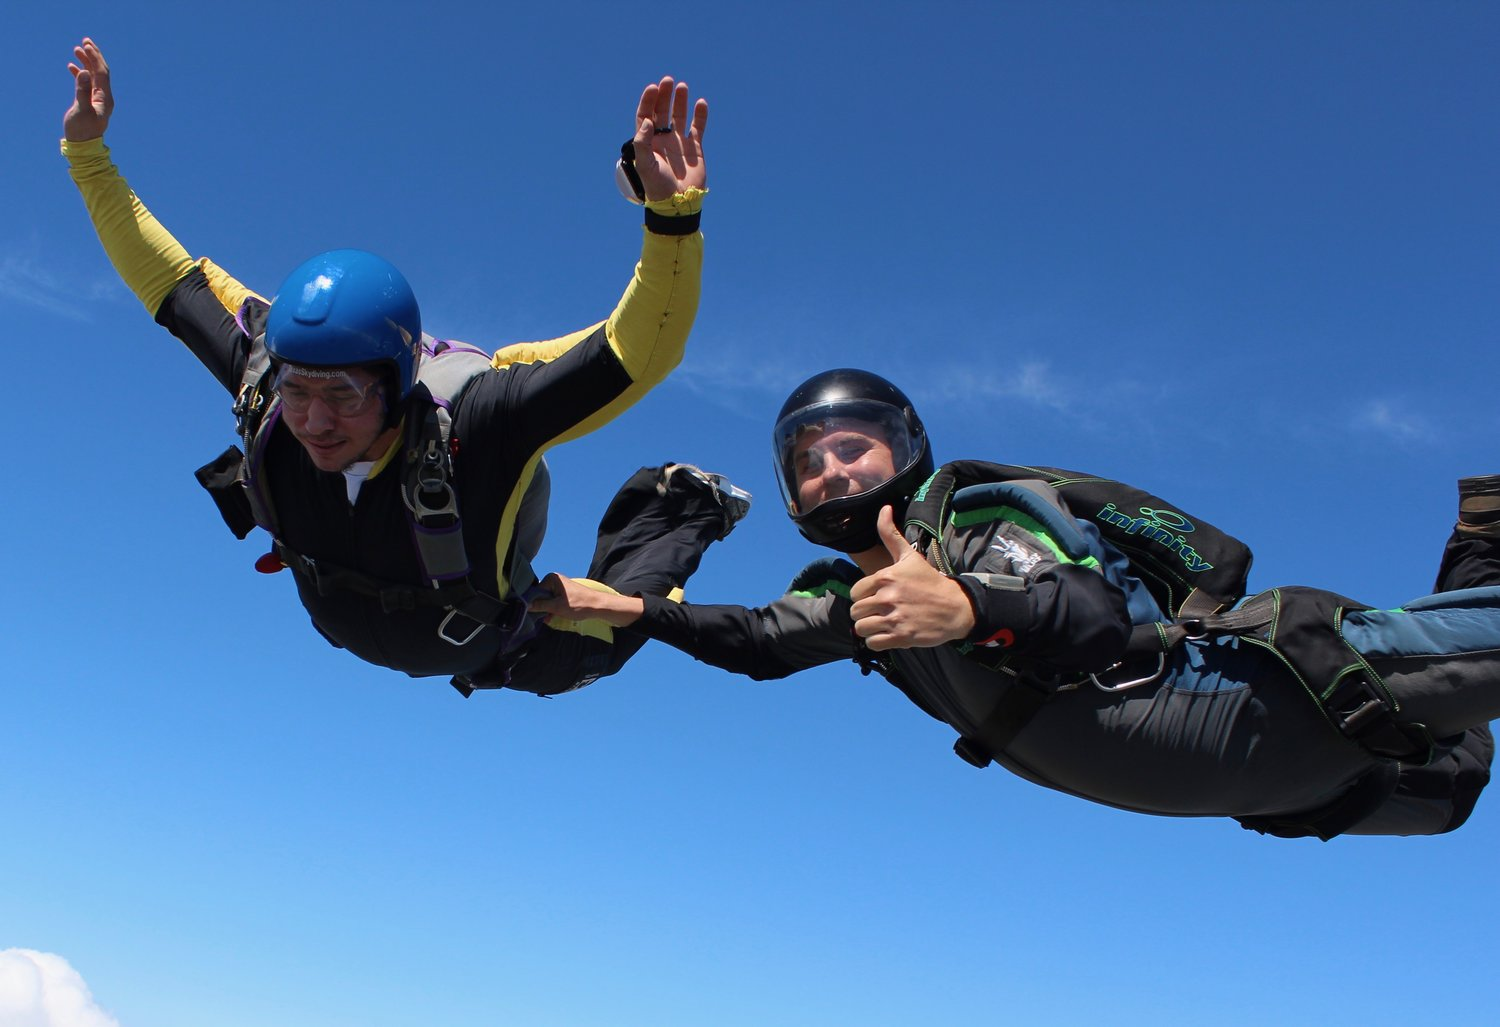 Texas Skydiving -- Great Skydive Prices for Austin, College